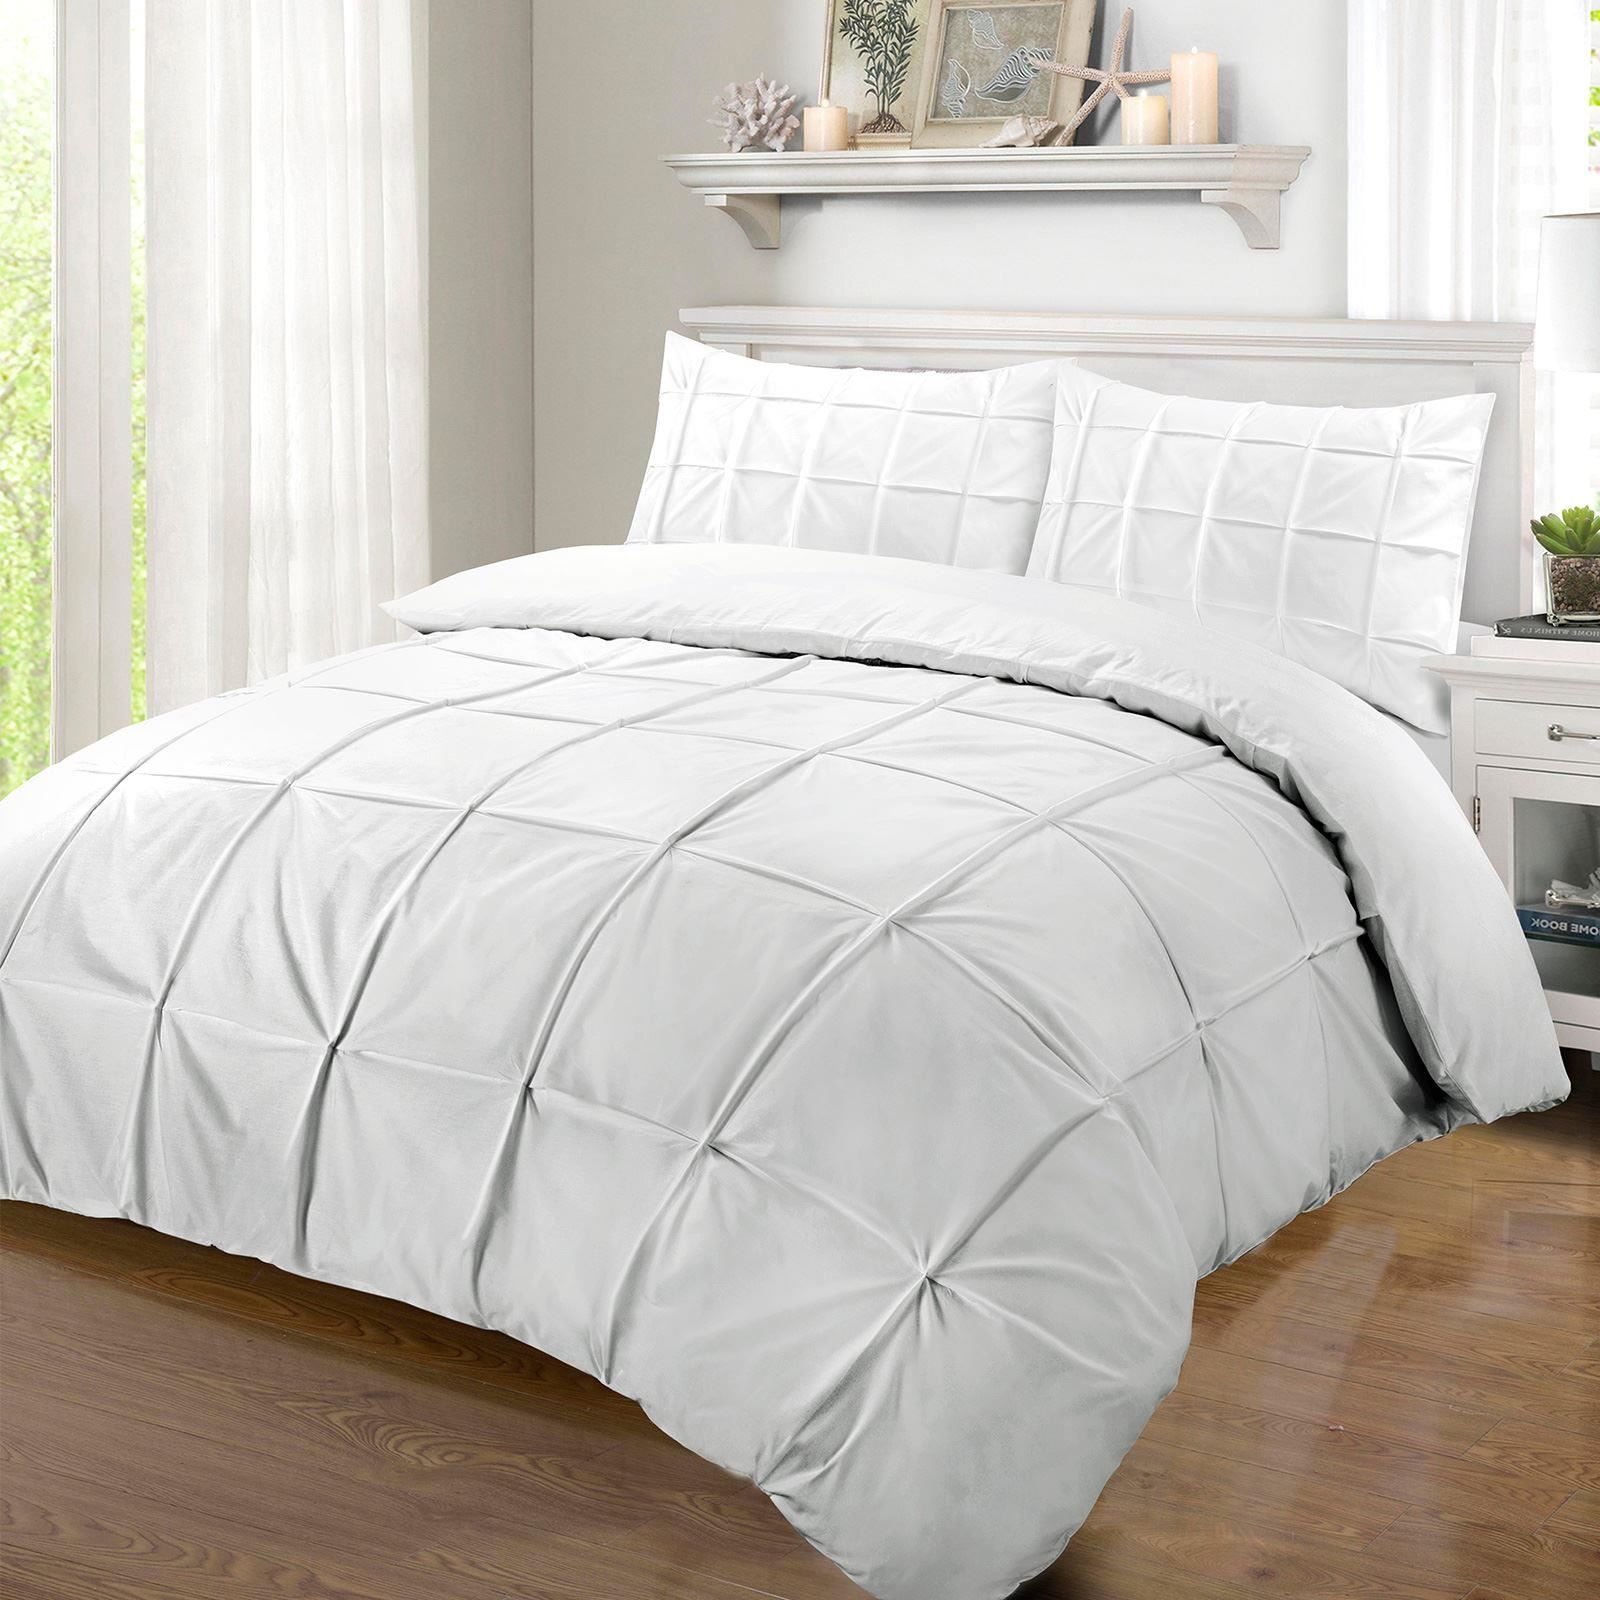 duvet embellished pinch halpert pleated pleat piece an dp amazon designer set cover home ruffled silver king floral chic comforter com kitchen